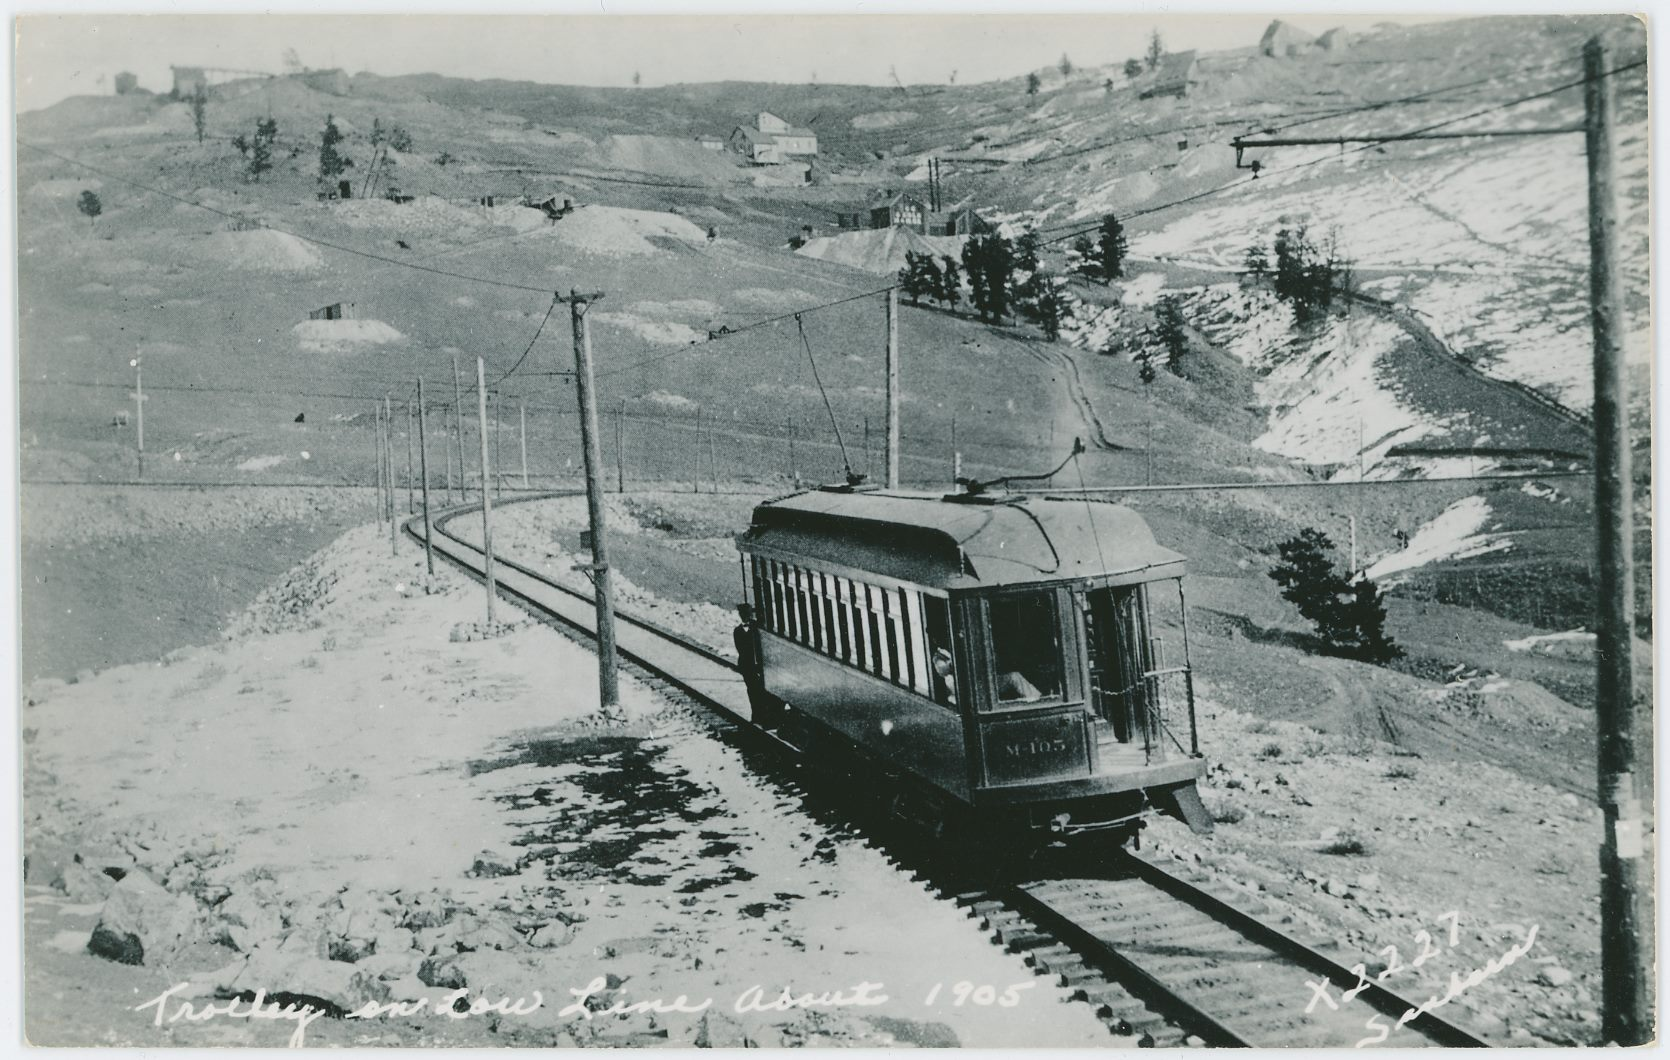 This view of Trolley No. M-105, heading for Cripple Creek on the Low Line, is taking just after passing Alamo Junction where there was a side spur for steam trains up to the Index mine ore house. At one time, there was a plan to extend the track up a siding along the Moon-Anchor mine, as far as I know this never happen though - only a road ever went there. Up near top of view, above the Trolley, is seen first the shaft house of the Rittenhouse Mine, then the Short Line grade climbing Gold Hill and then the shaft house and orehouse of the E. Porter-Gold King mine is seen with its cupola plainly poking up of the roof. Near upper left is seen a bad view of the Lexington Mine – easy to pick up due to the long trestle to the quite large ore house of that operation. A water-tank is seen left of that mine.